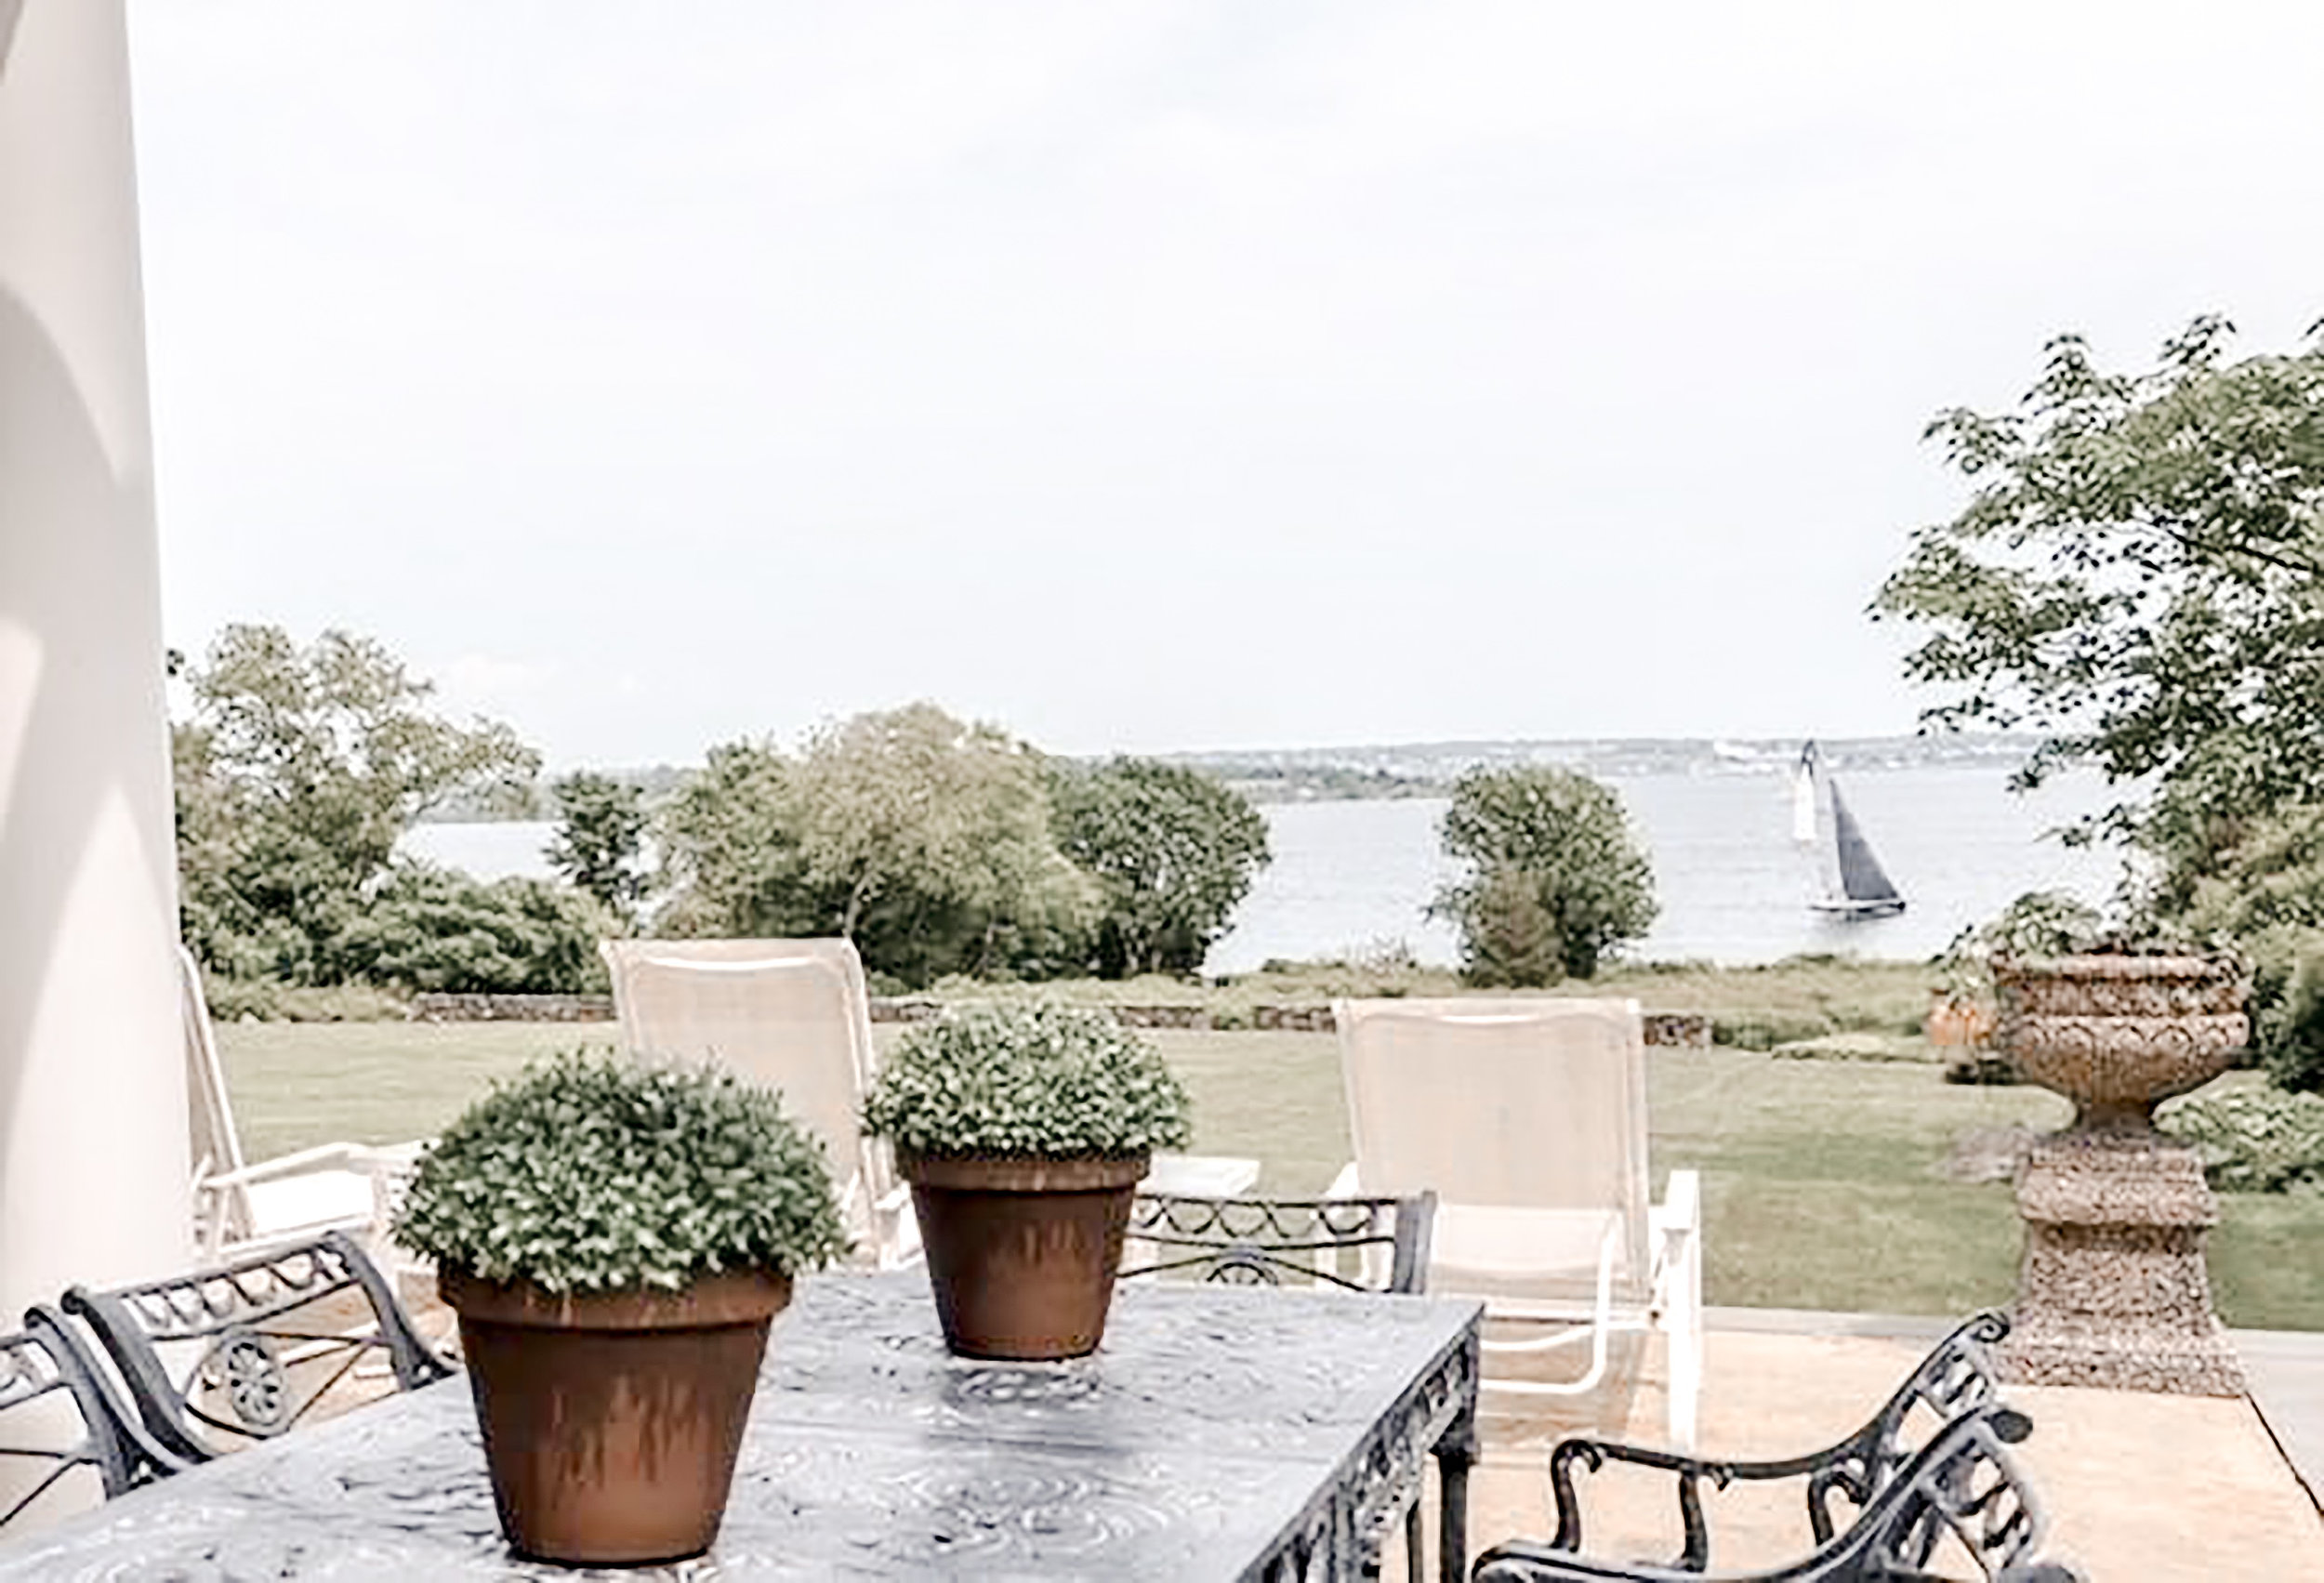 Luxe_and_Livable_Interior_Design_Blog_by_Maloney_Interiors_Newport_Rhode_Island_Gustave_White_Sotheby_Real_Estate_16.jpg